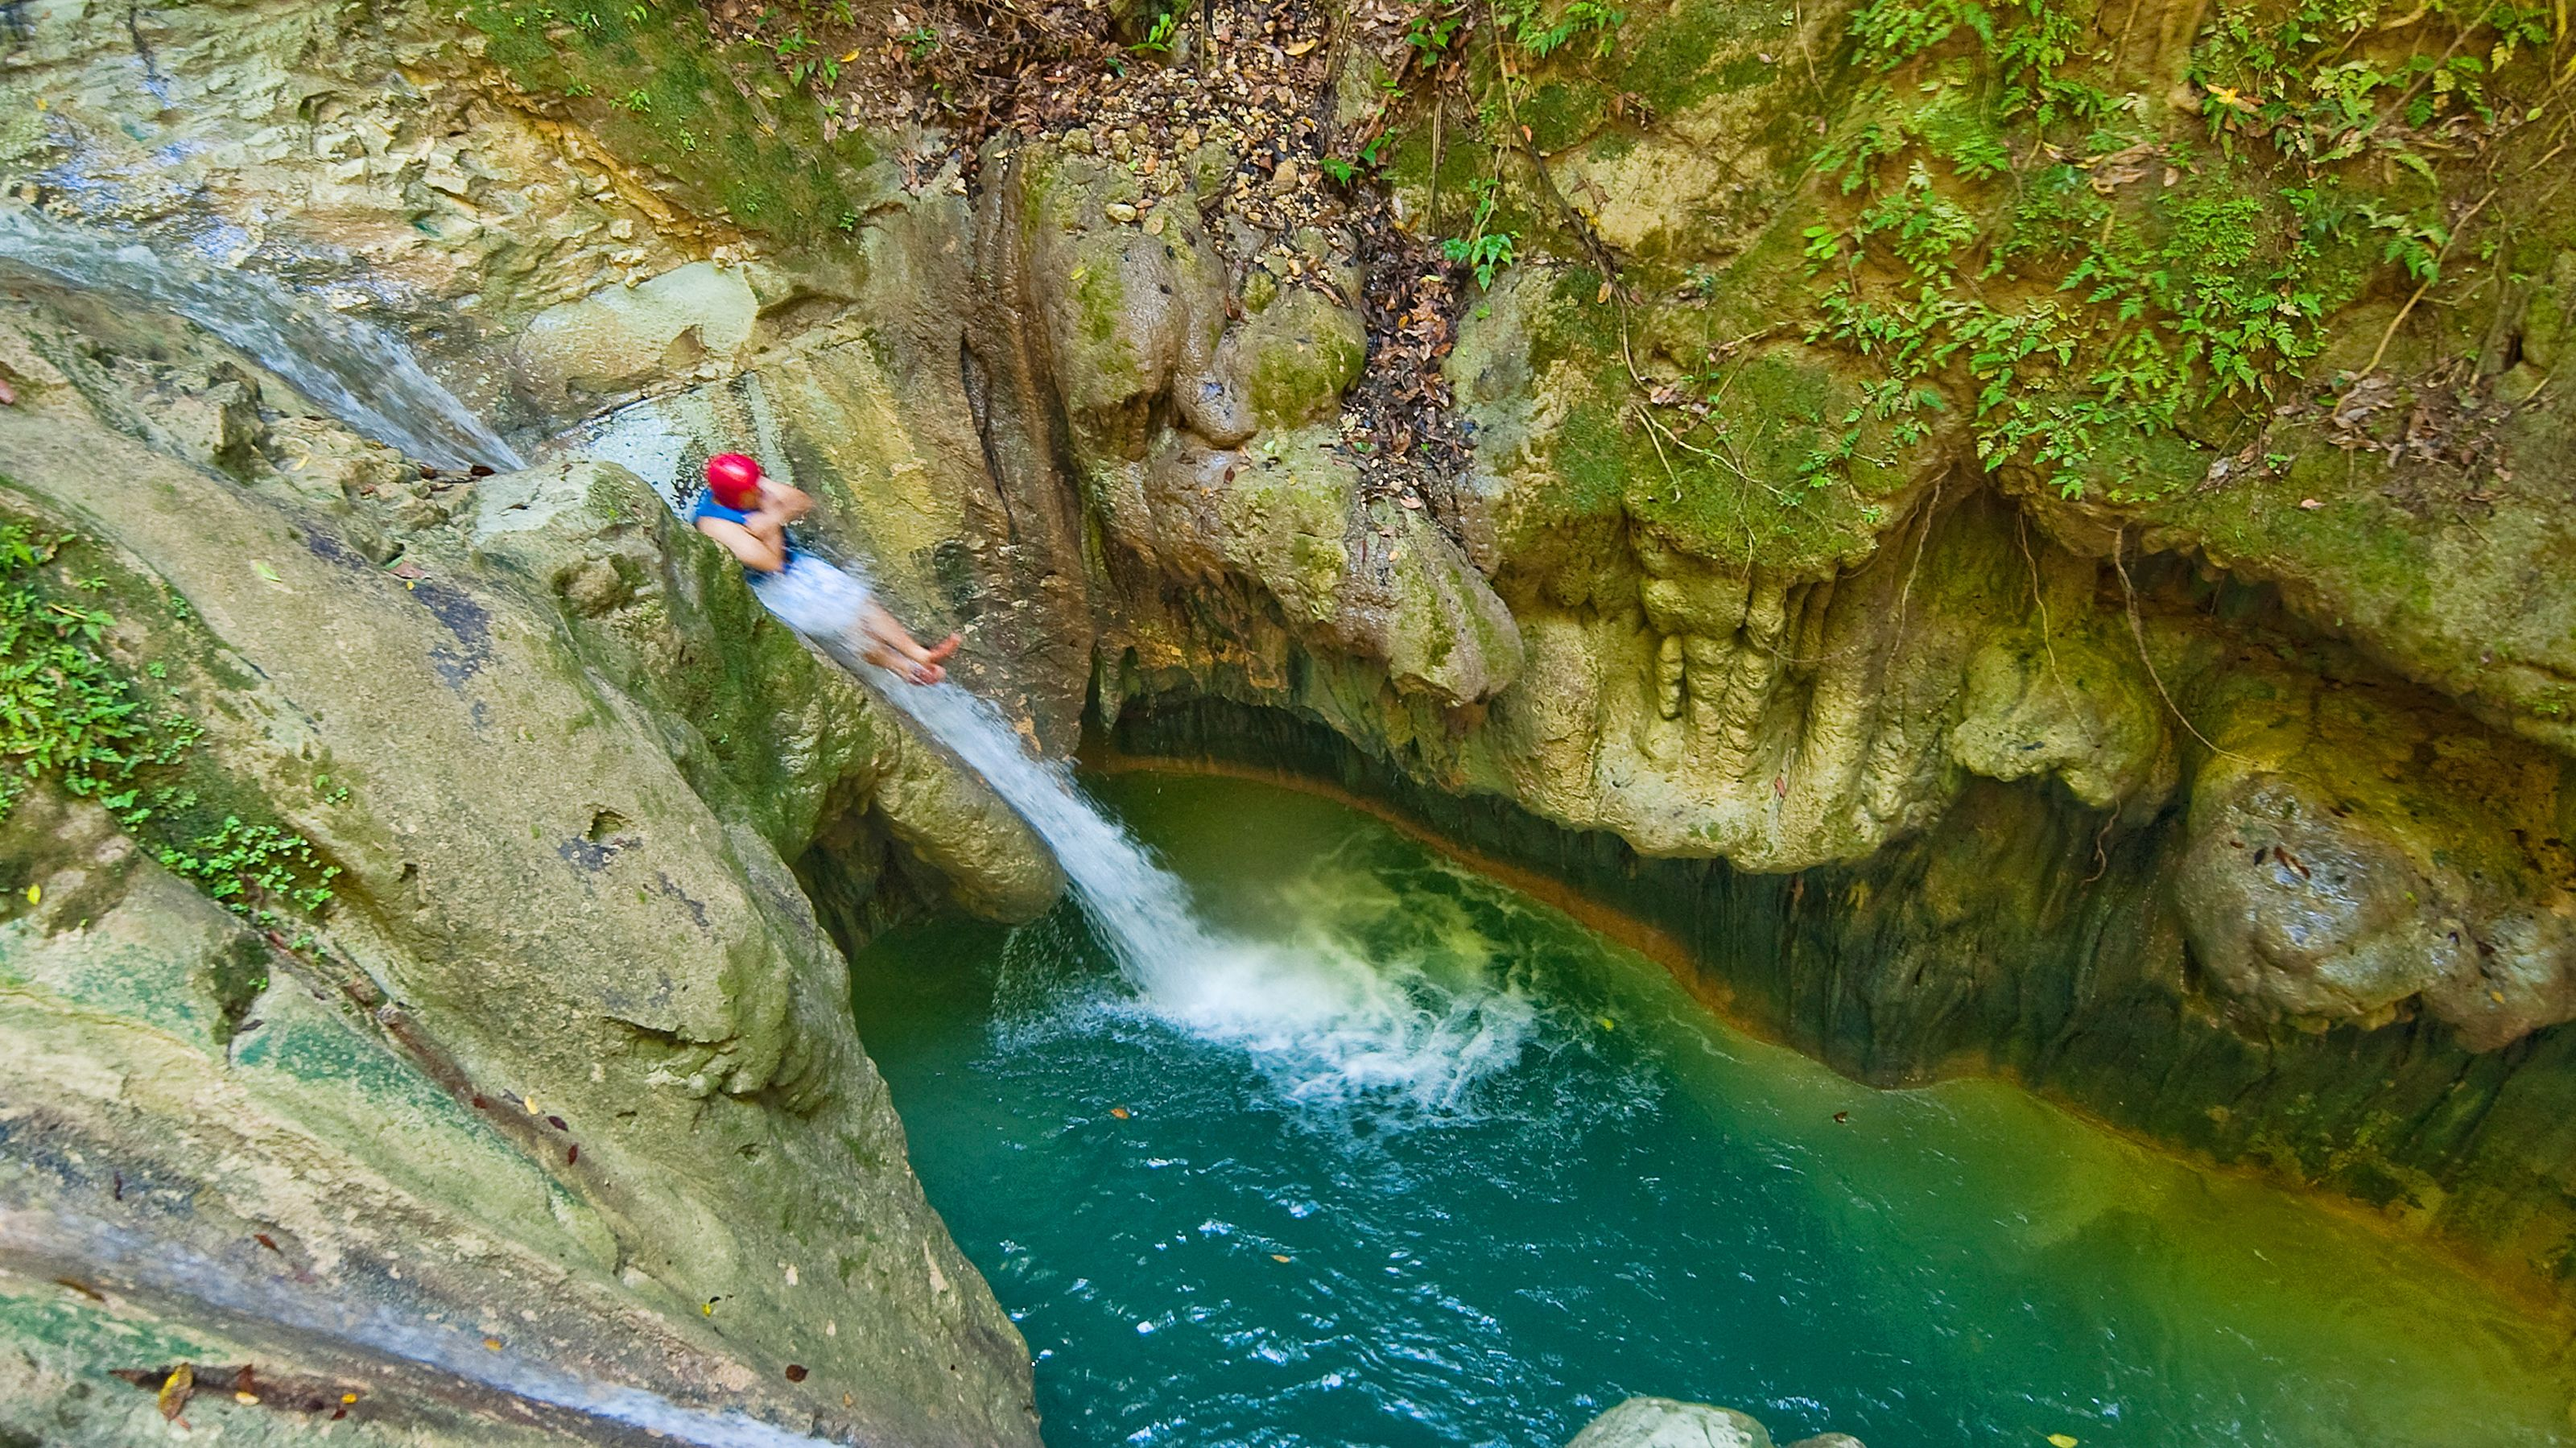 High angle view of person sliding down natural slide into pool of water